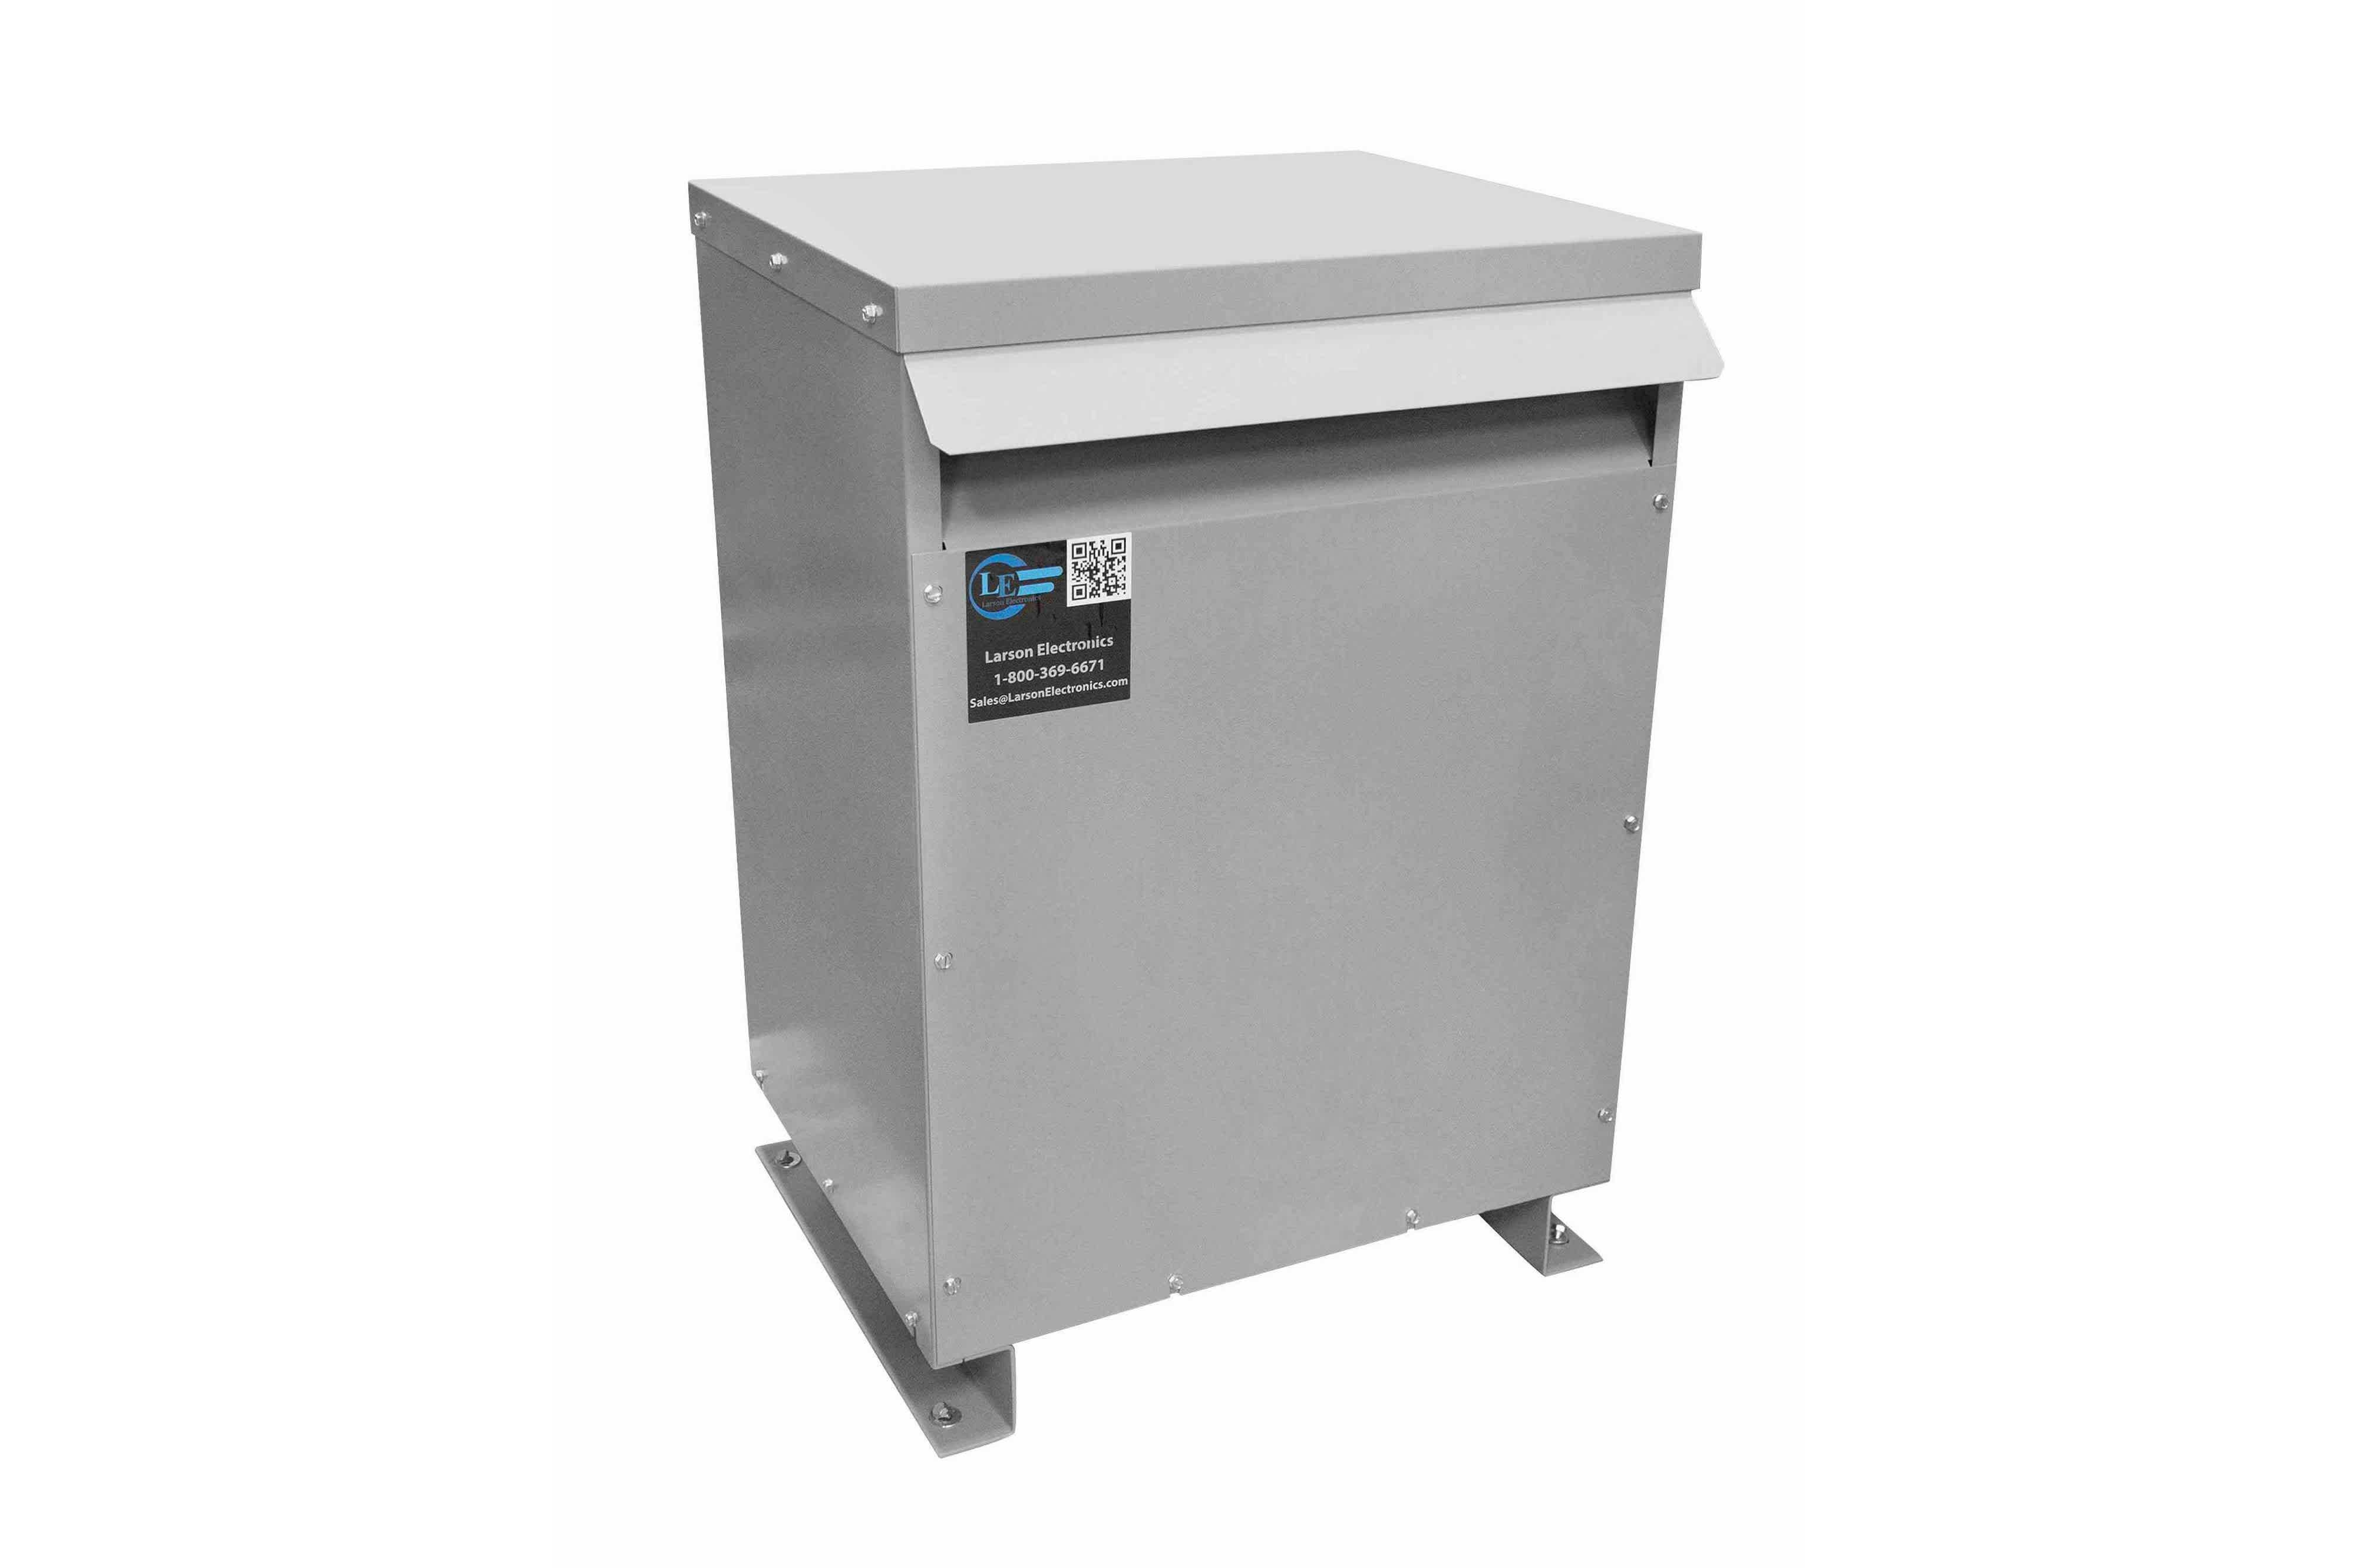 20 kVA 3PH Isolation Transformer, 380V Wye Primary, 240V Delta Secondary, N3R, Ventilated, 60 Hz